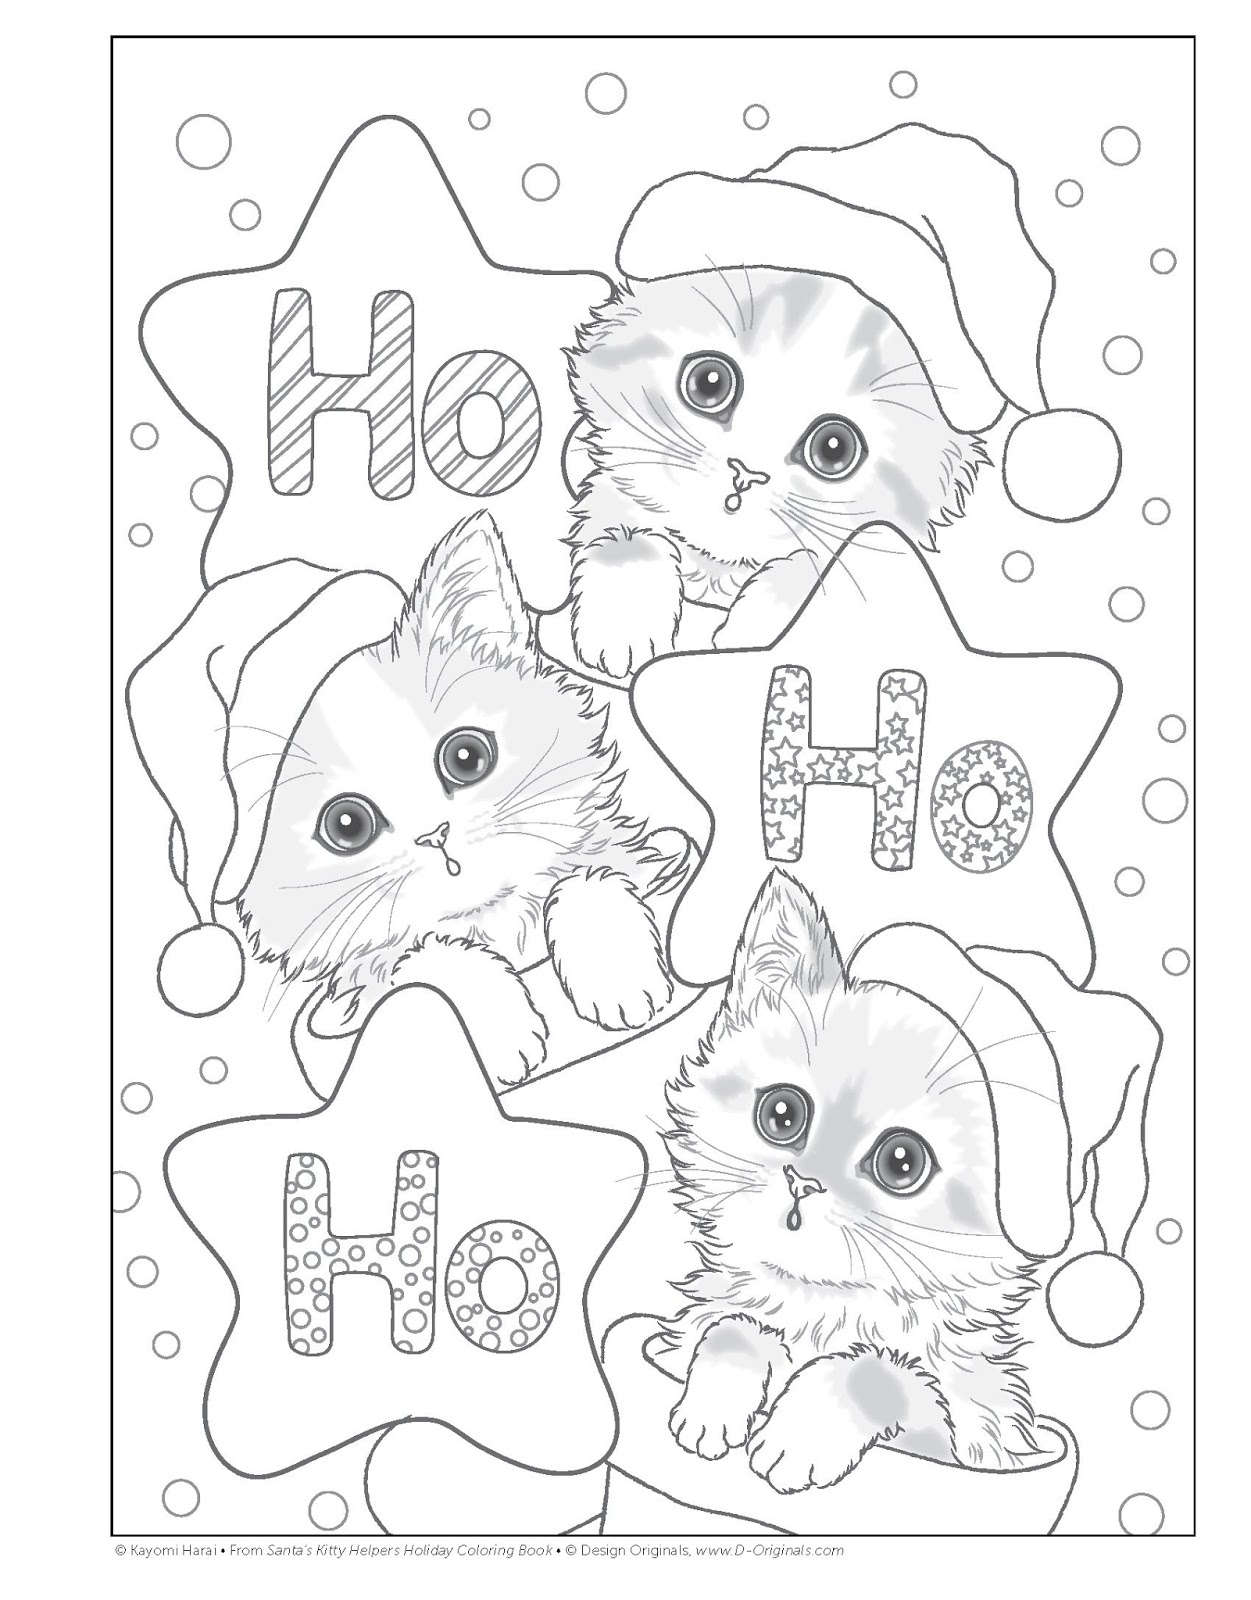 readers will recognize these same black white coloring pages from kayomis higher priced santas furry helpers